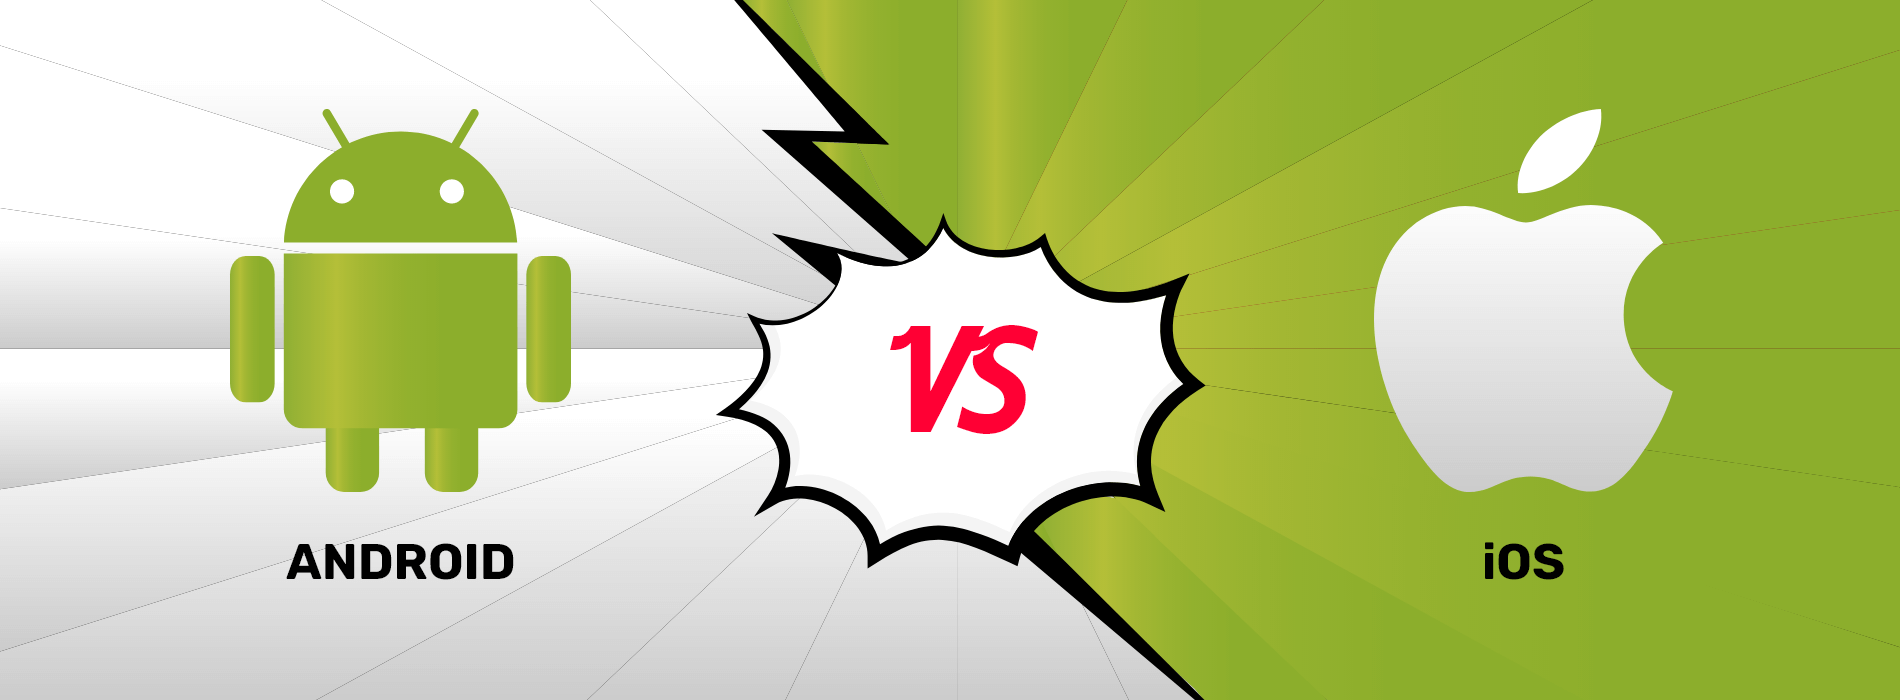 iOS Vs Android App Development: Which Is Best?